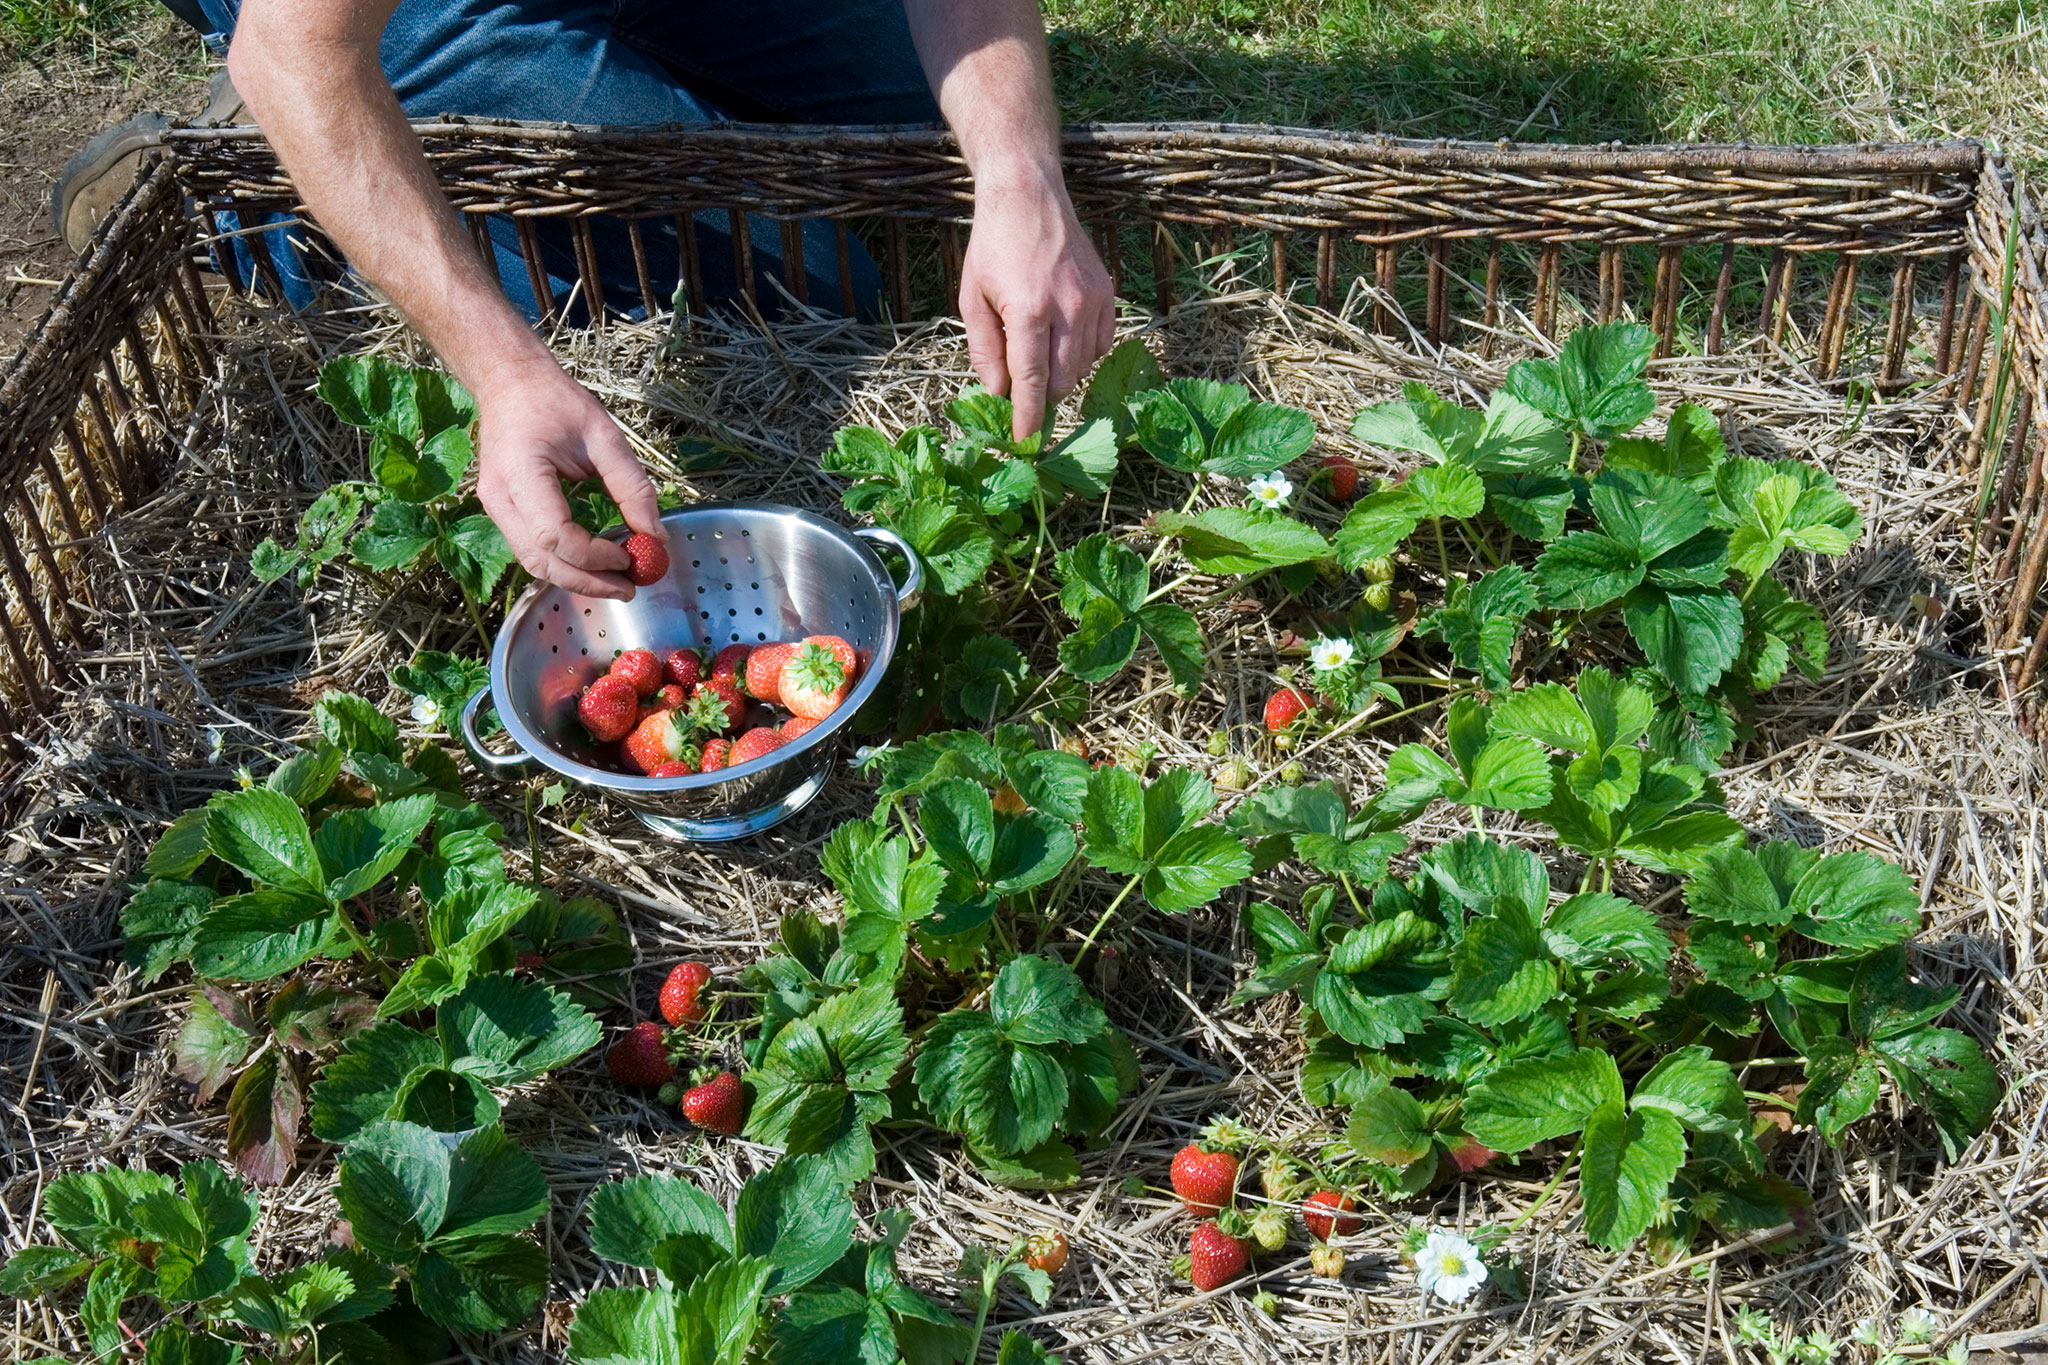 How to make a strawberry bed